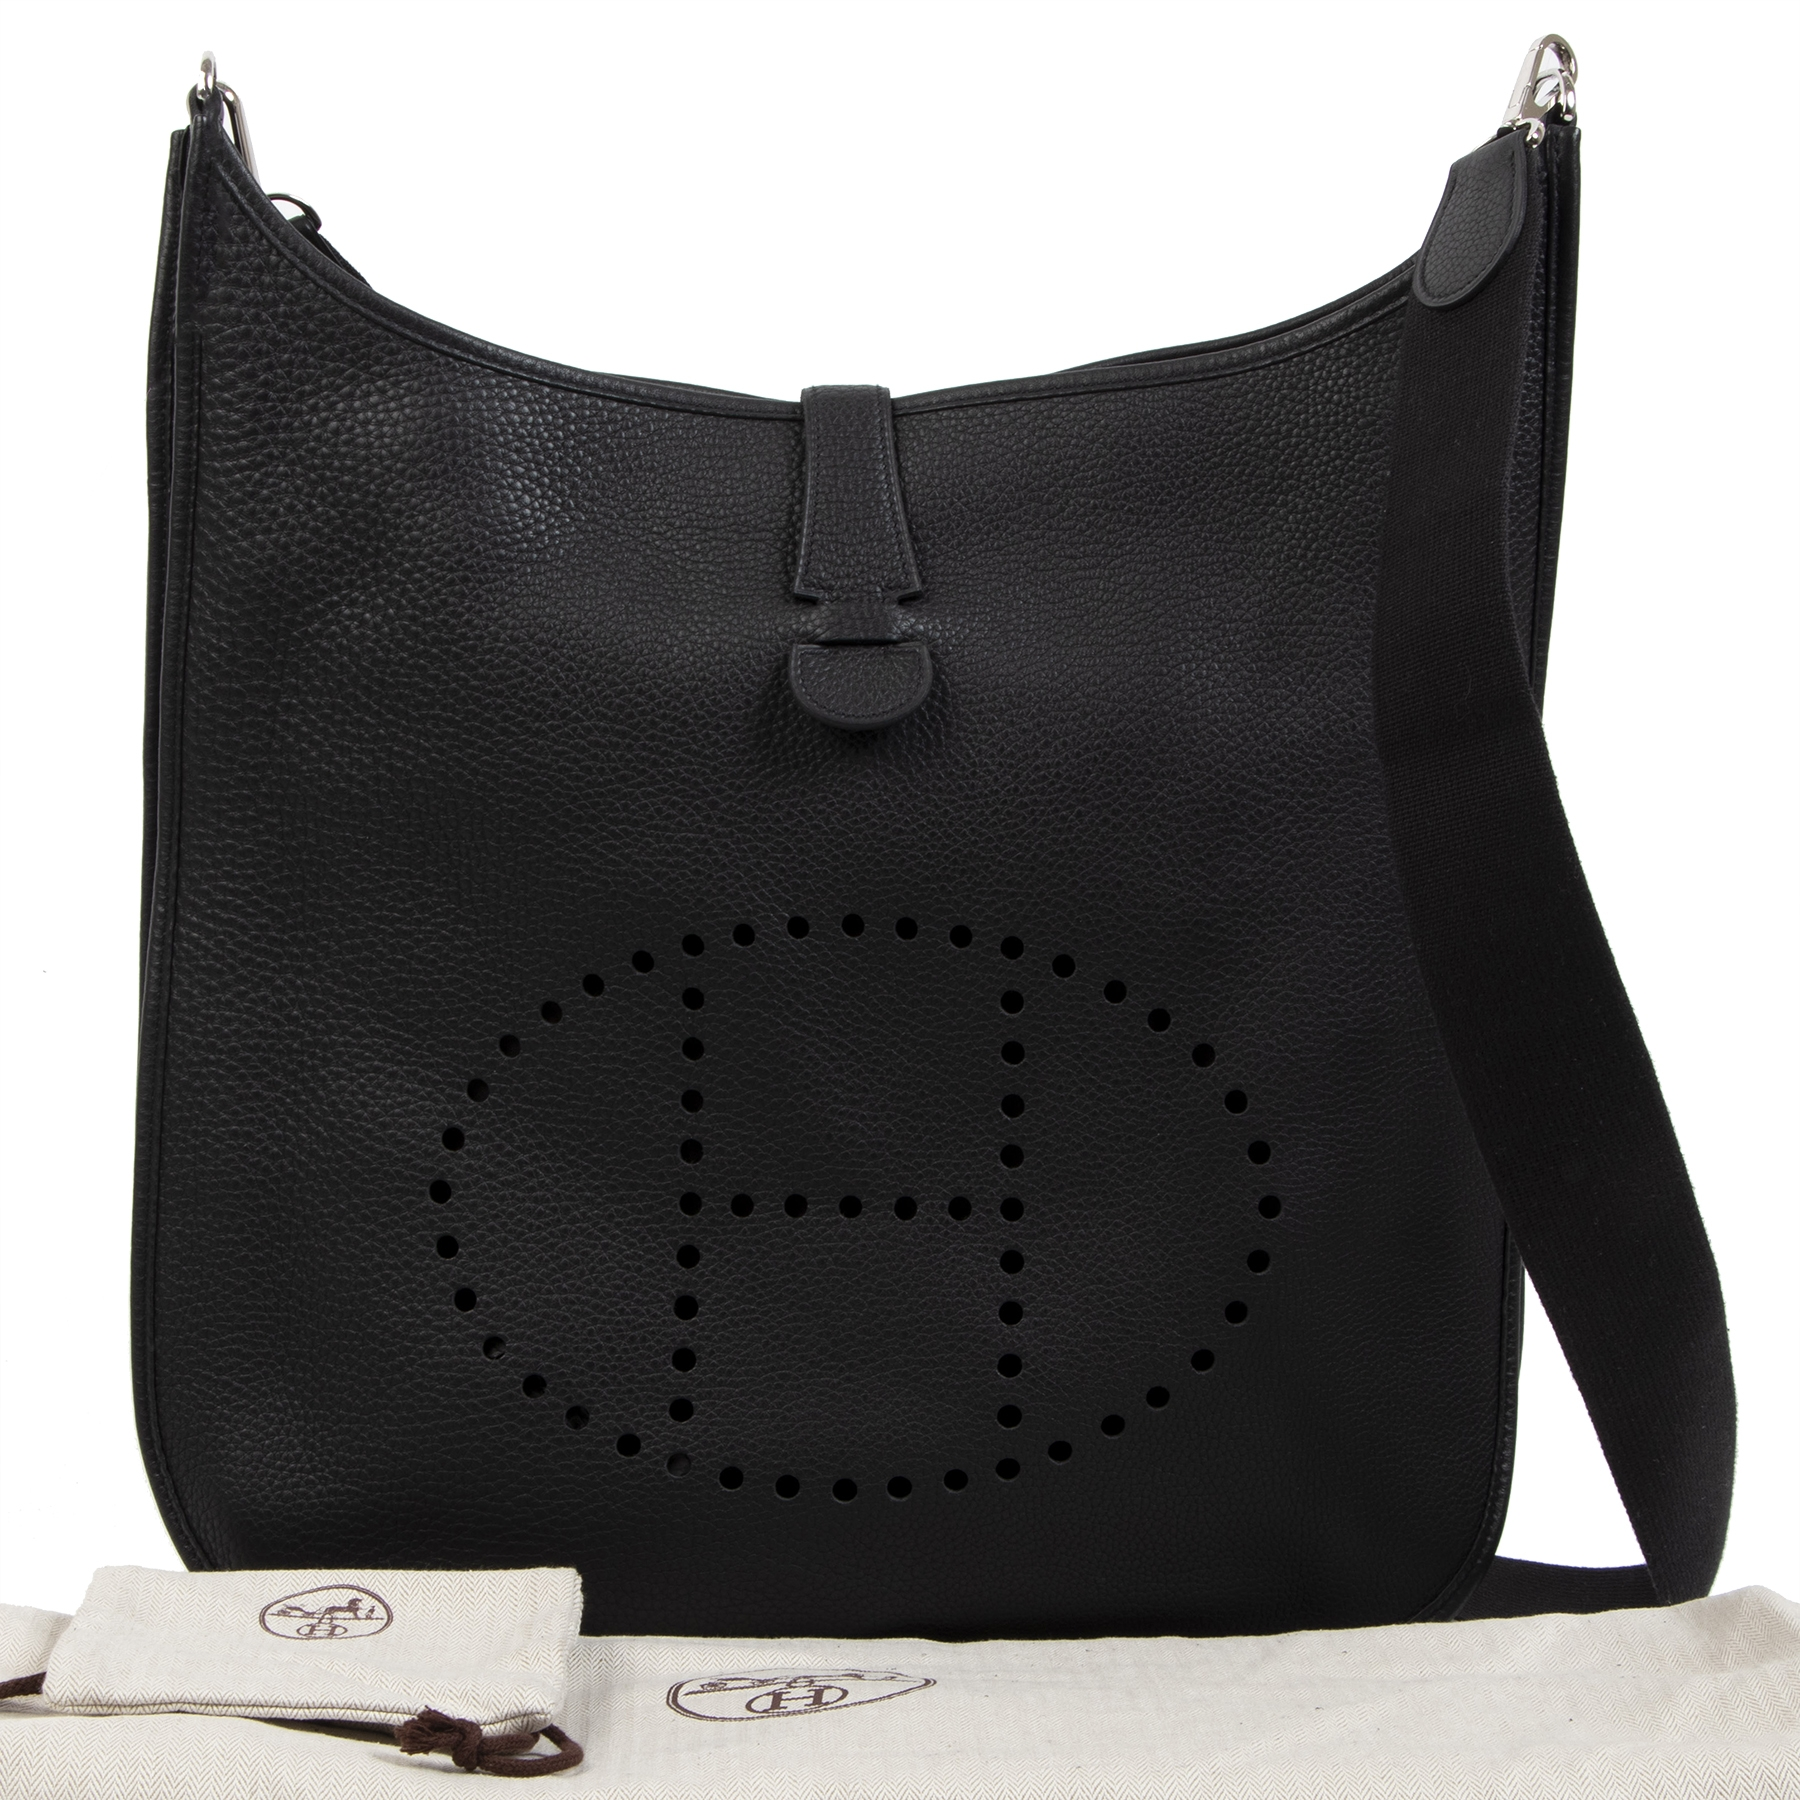 Authentieke tweedehands vintage Hermès Evelyne Black TGM Bag koop online webshop LabelLOV